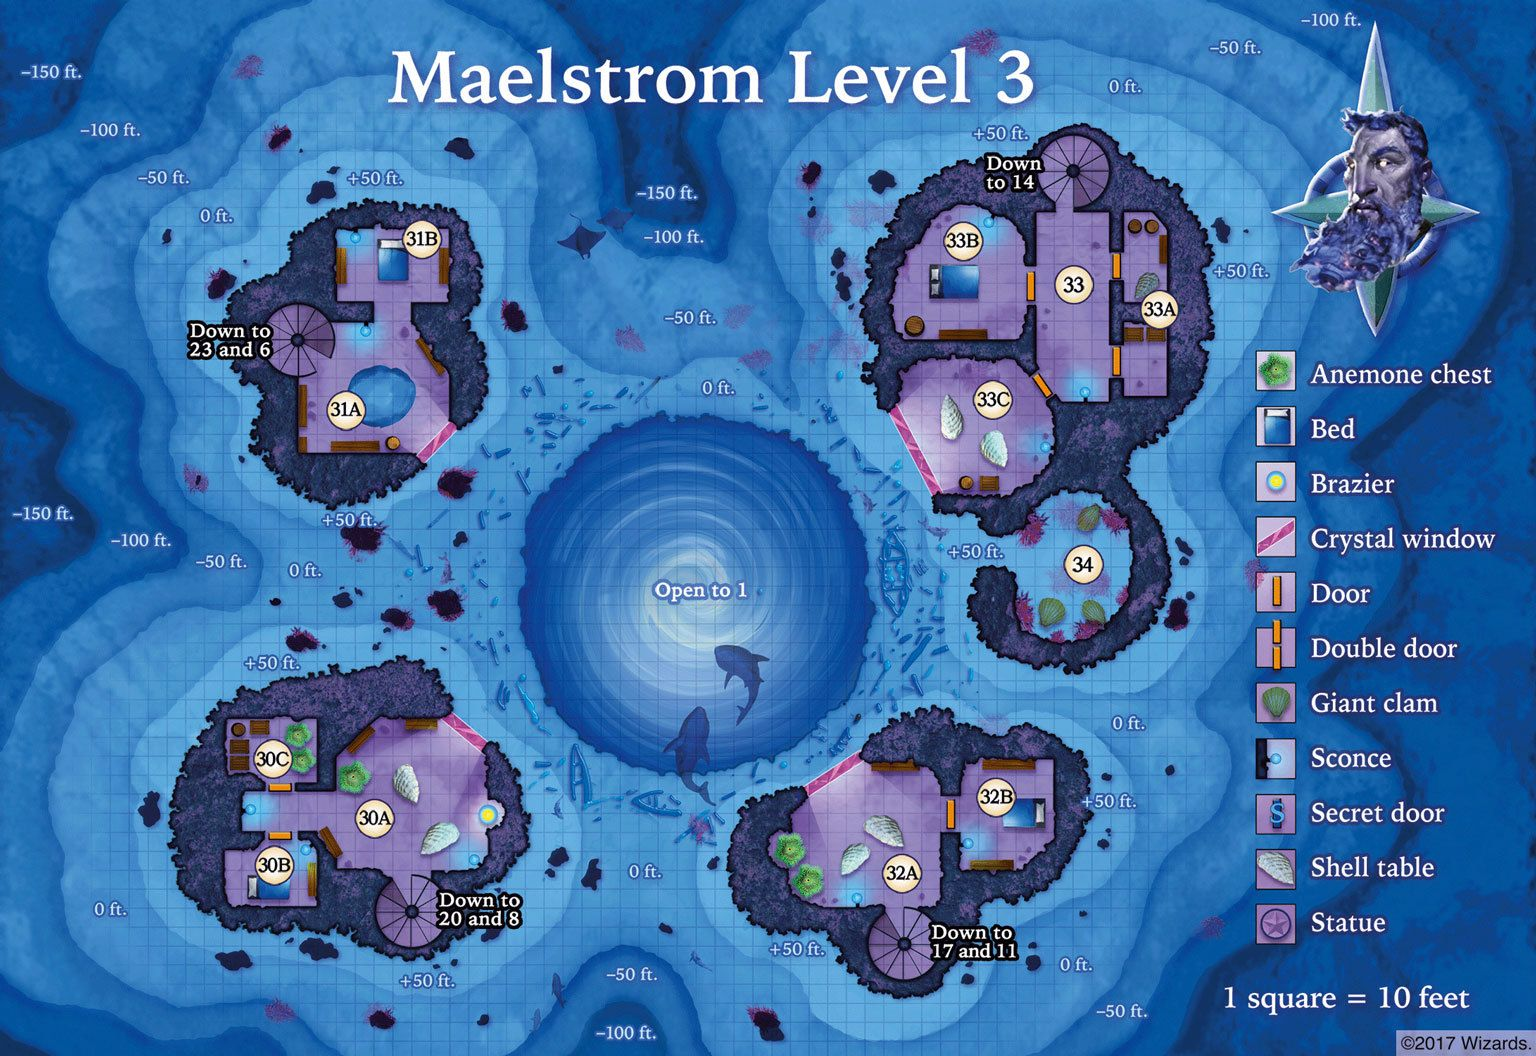 Maelstrom Level 3 sm | MAPS in 2019 | Dungeon maps, Fantasy map